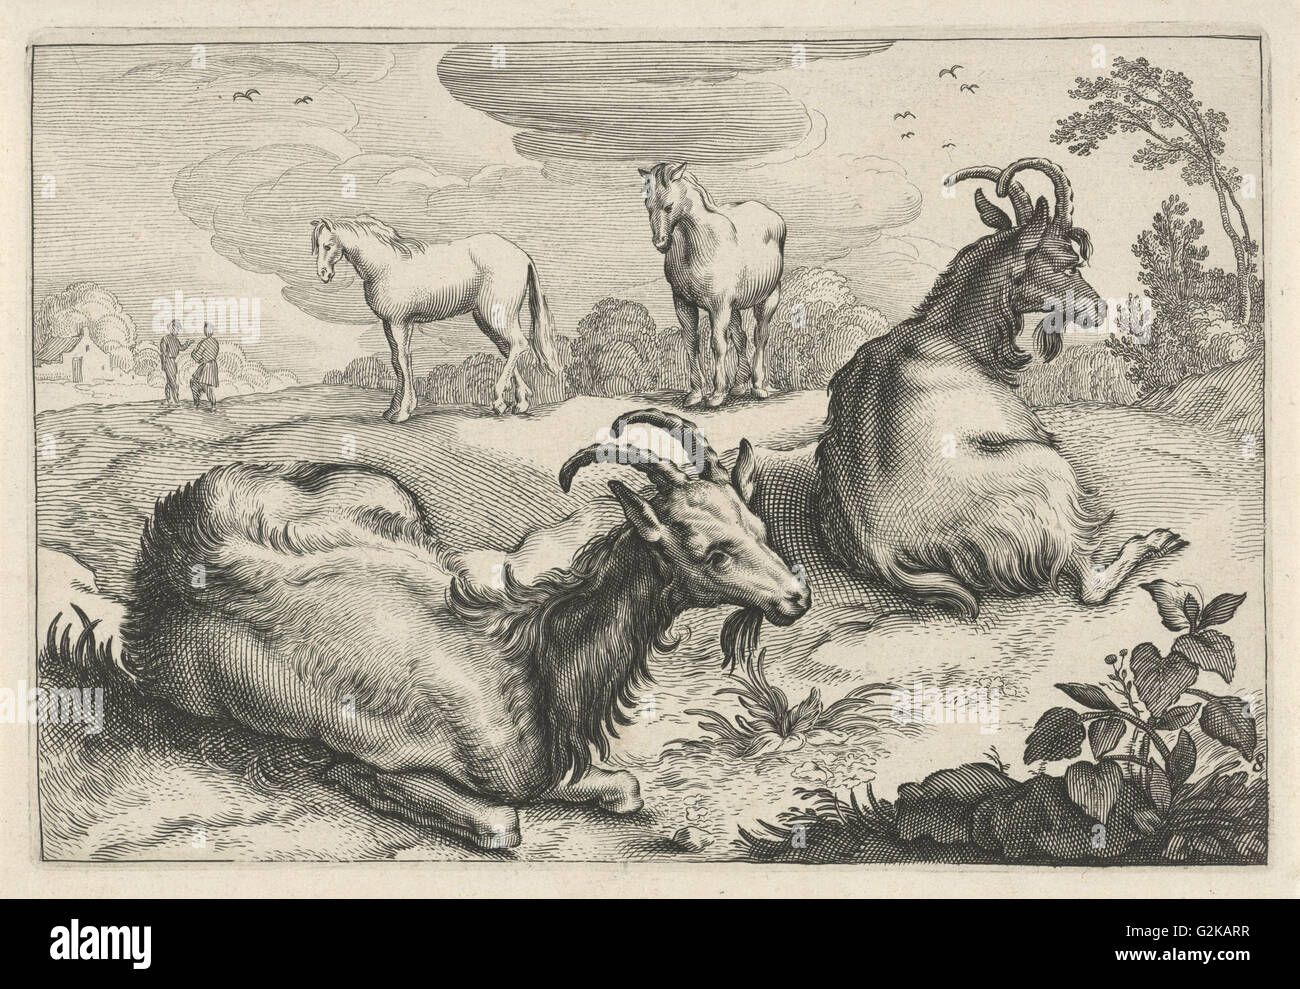 a horse and two goat literary It deals with icse english language and literature monday, 12 march 2018 a horse and two goats extract i of the seven hundred villages dotting the map of india .